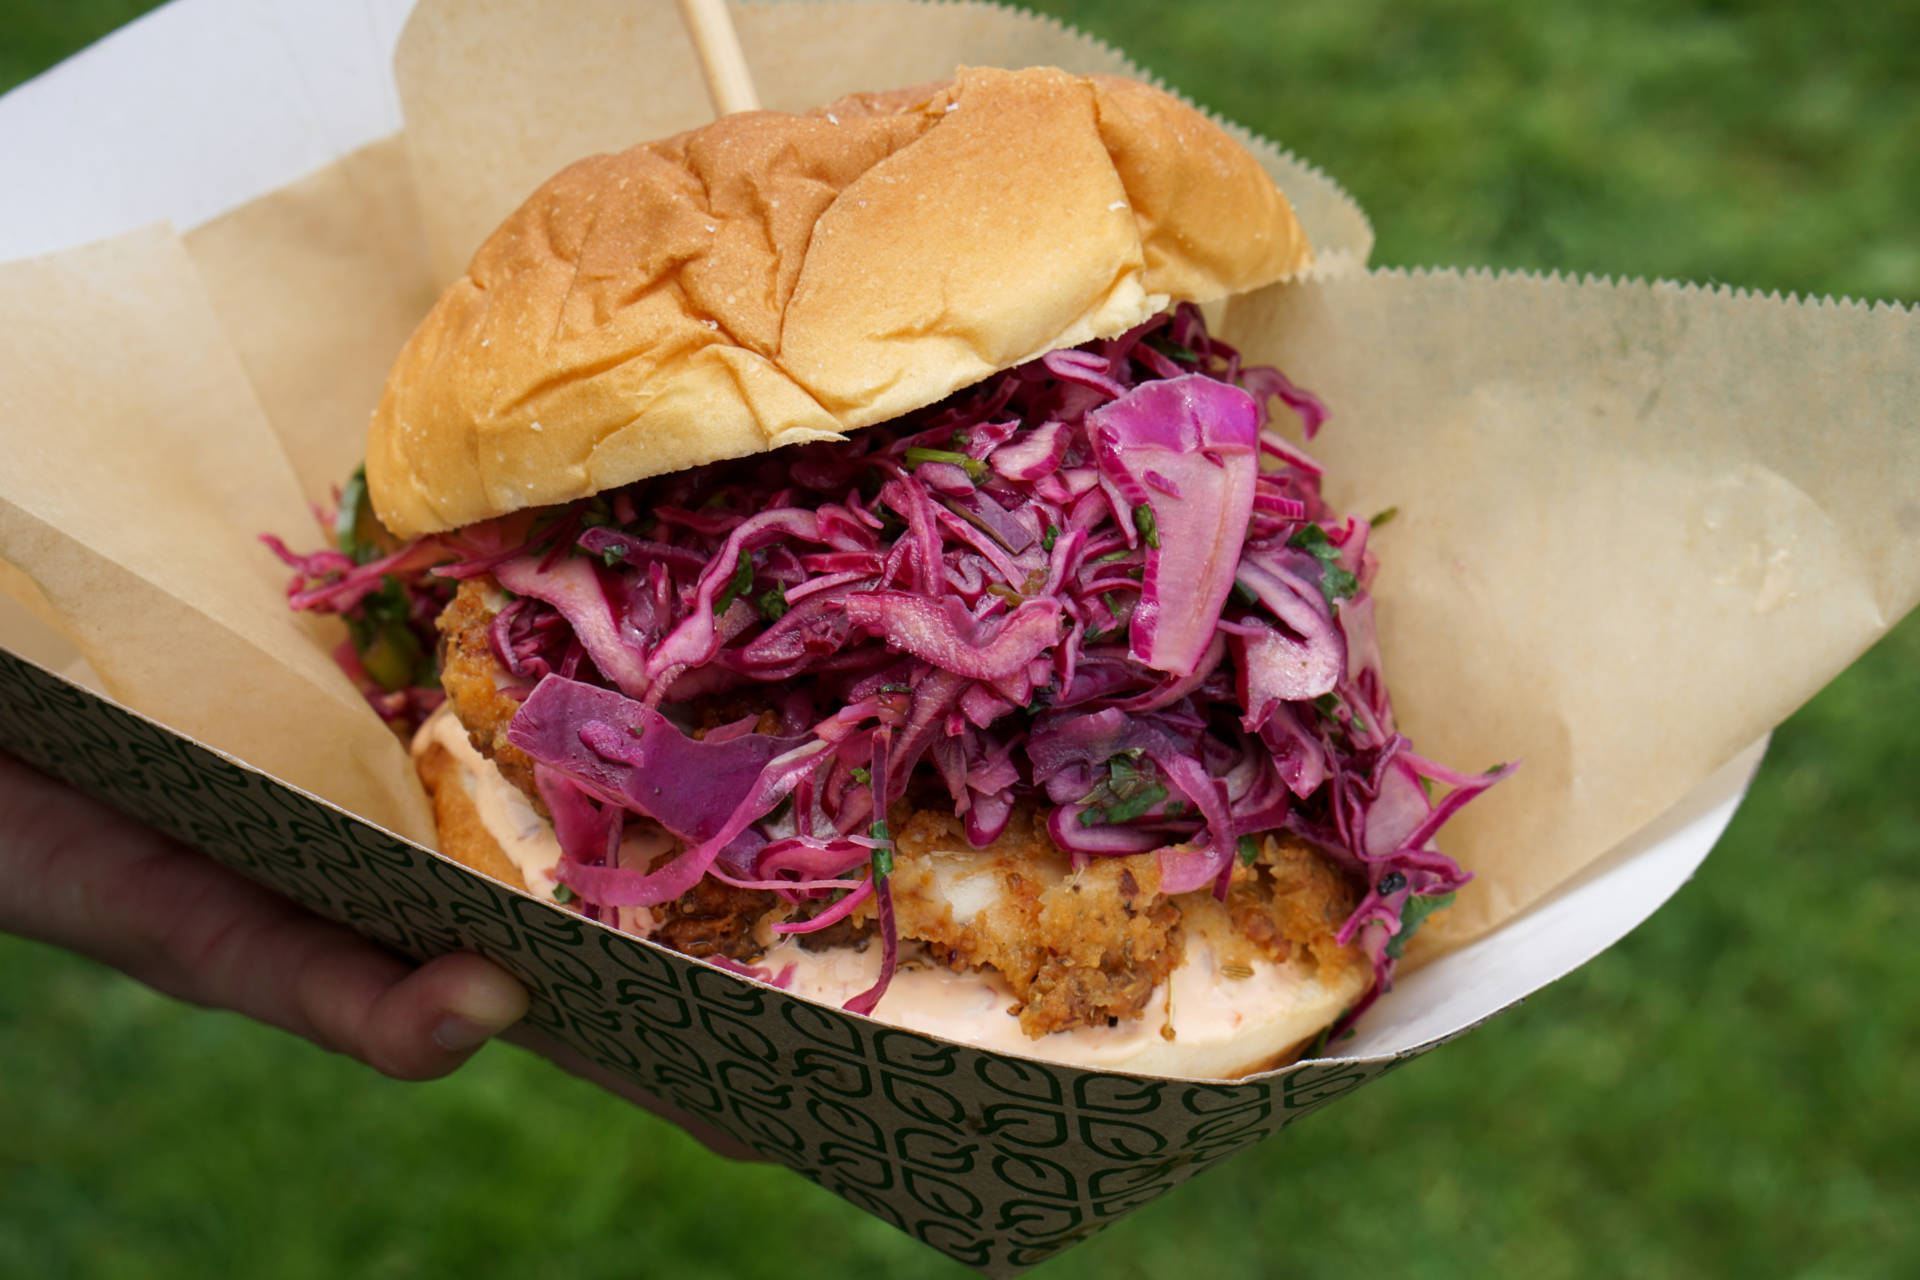 Sorrel's Fried Chicken Sandwich with Jalapeño Slaw